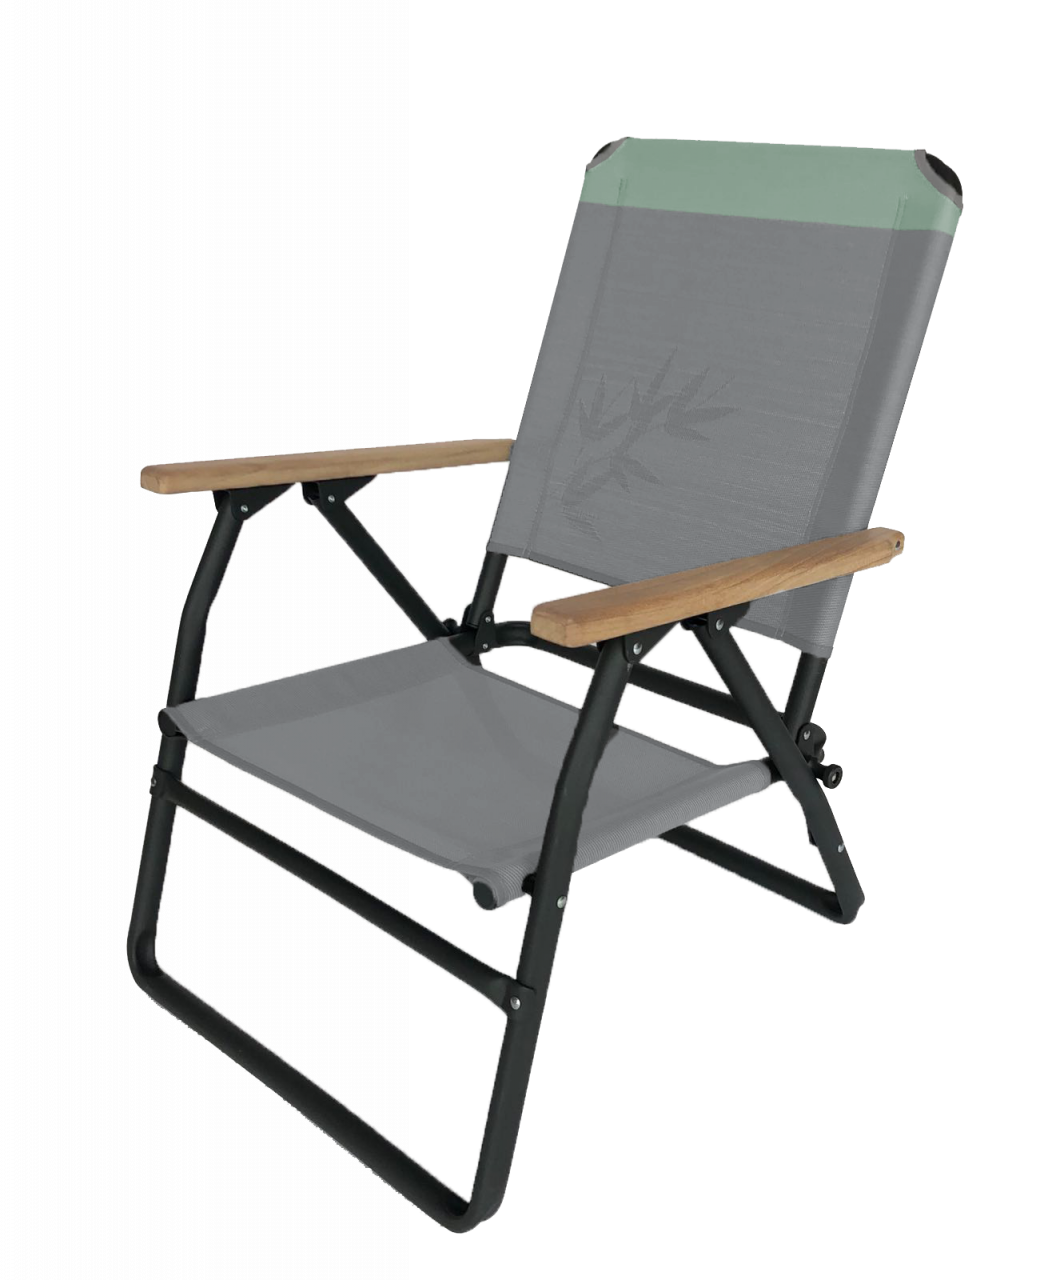 Human Comfort Compact chair Boust XL Campingstoel